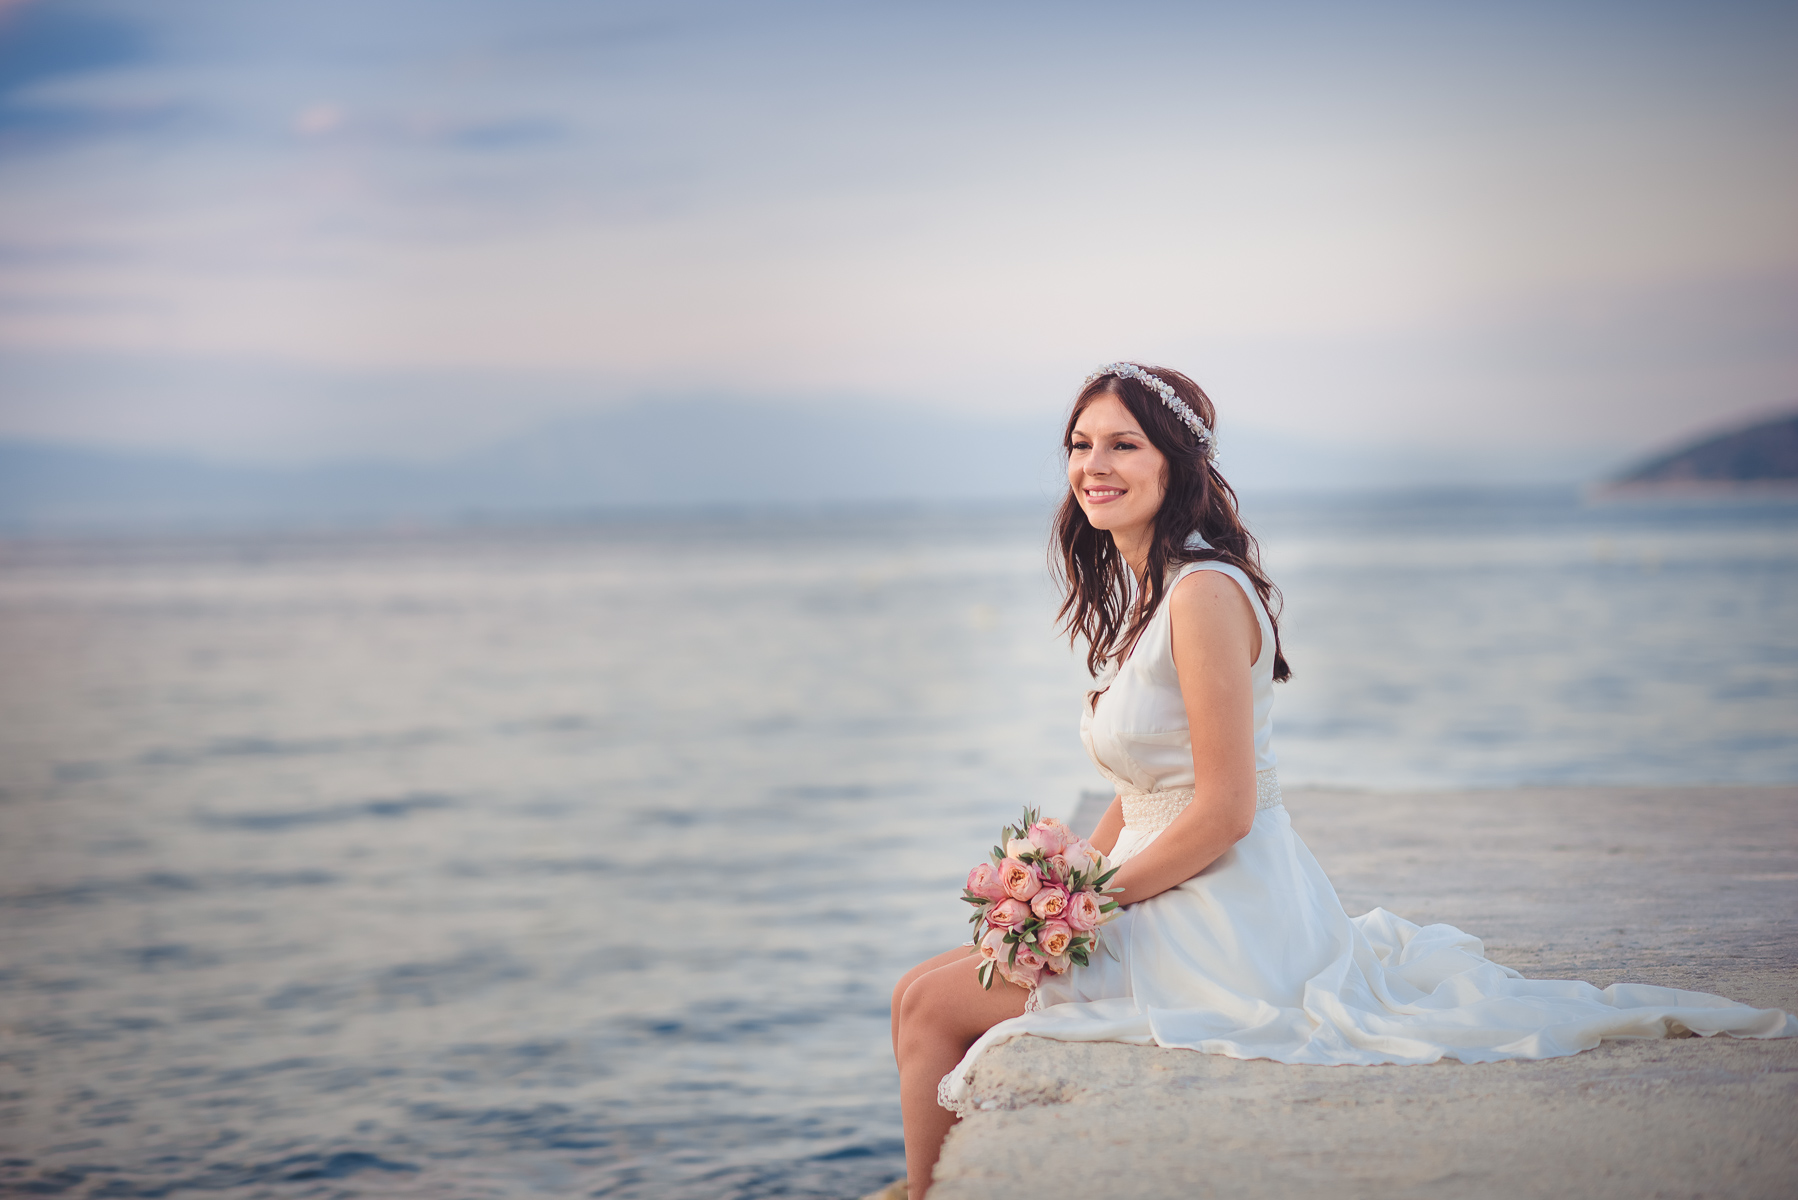 Thassos-greece-wedding-photographer-65